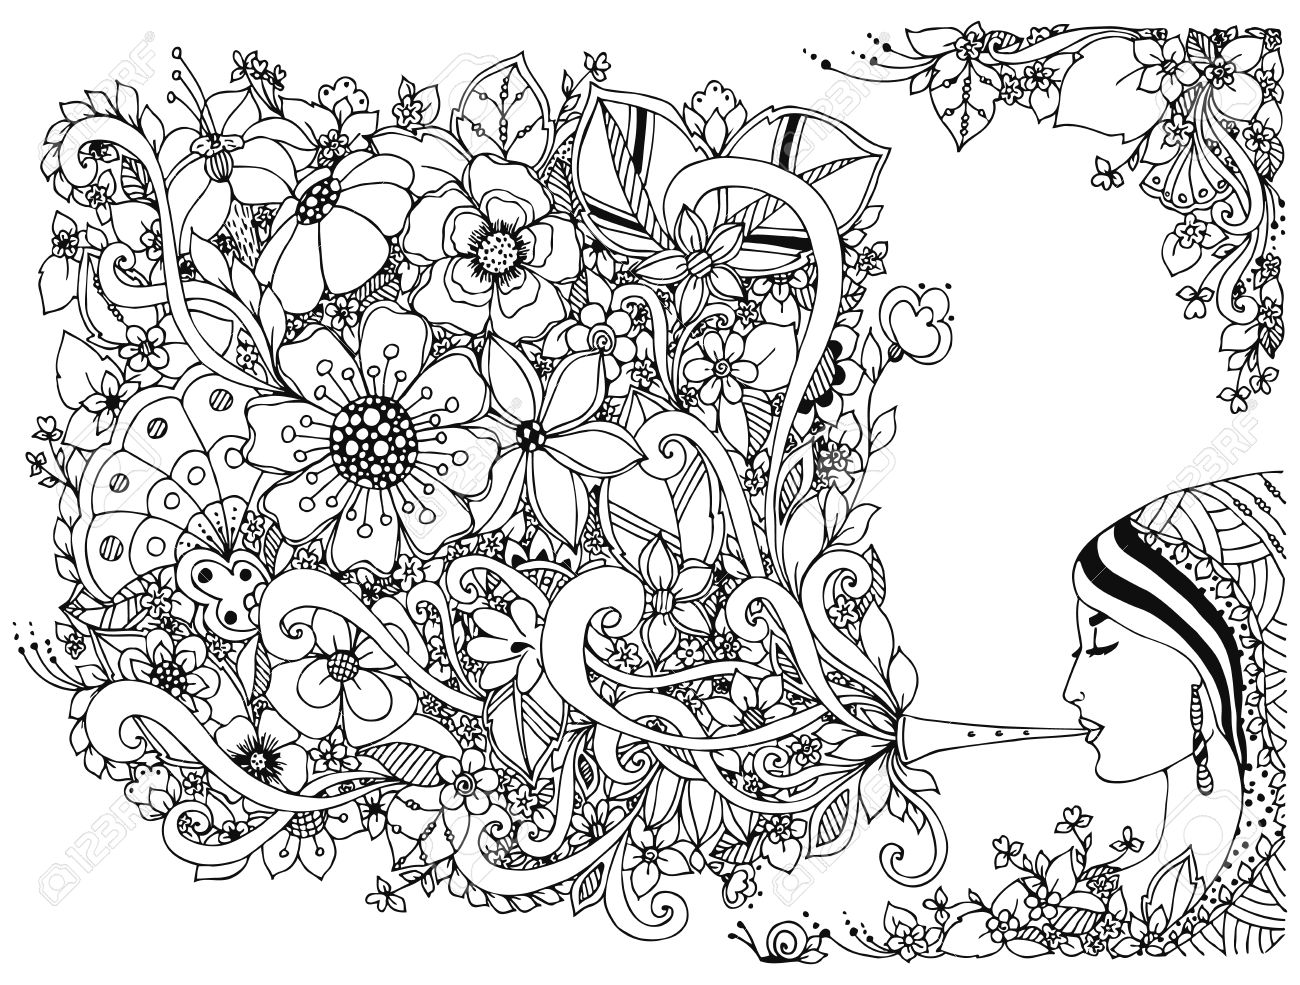 Vector vector illustration woman girl and flute with flowers coloring anti stress black and white adult coloring books musical instrument music